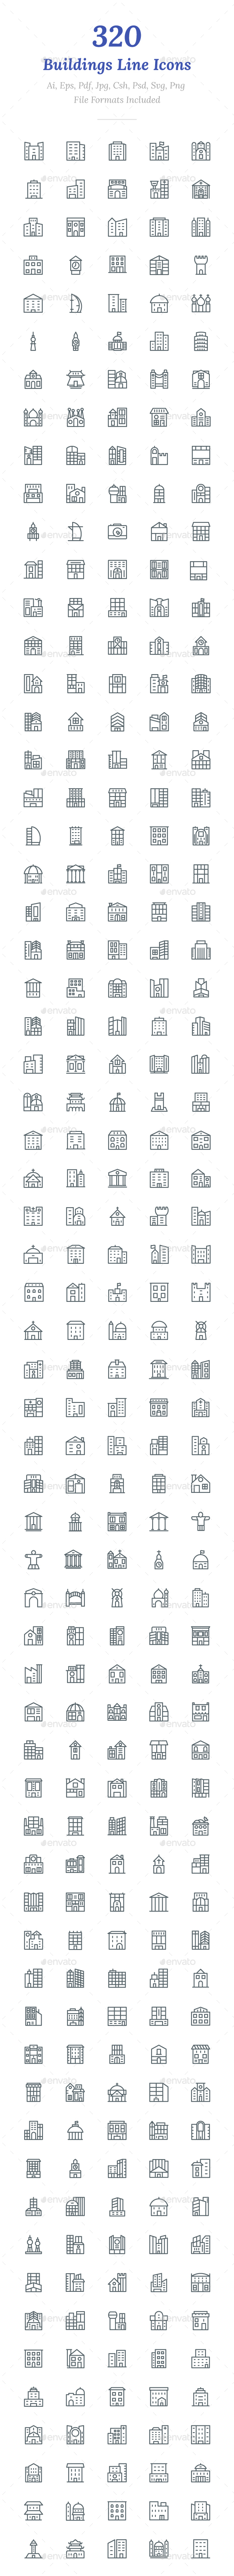 320 Buildings Line Icons - Icons